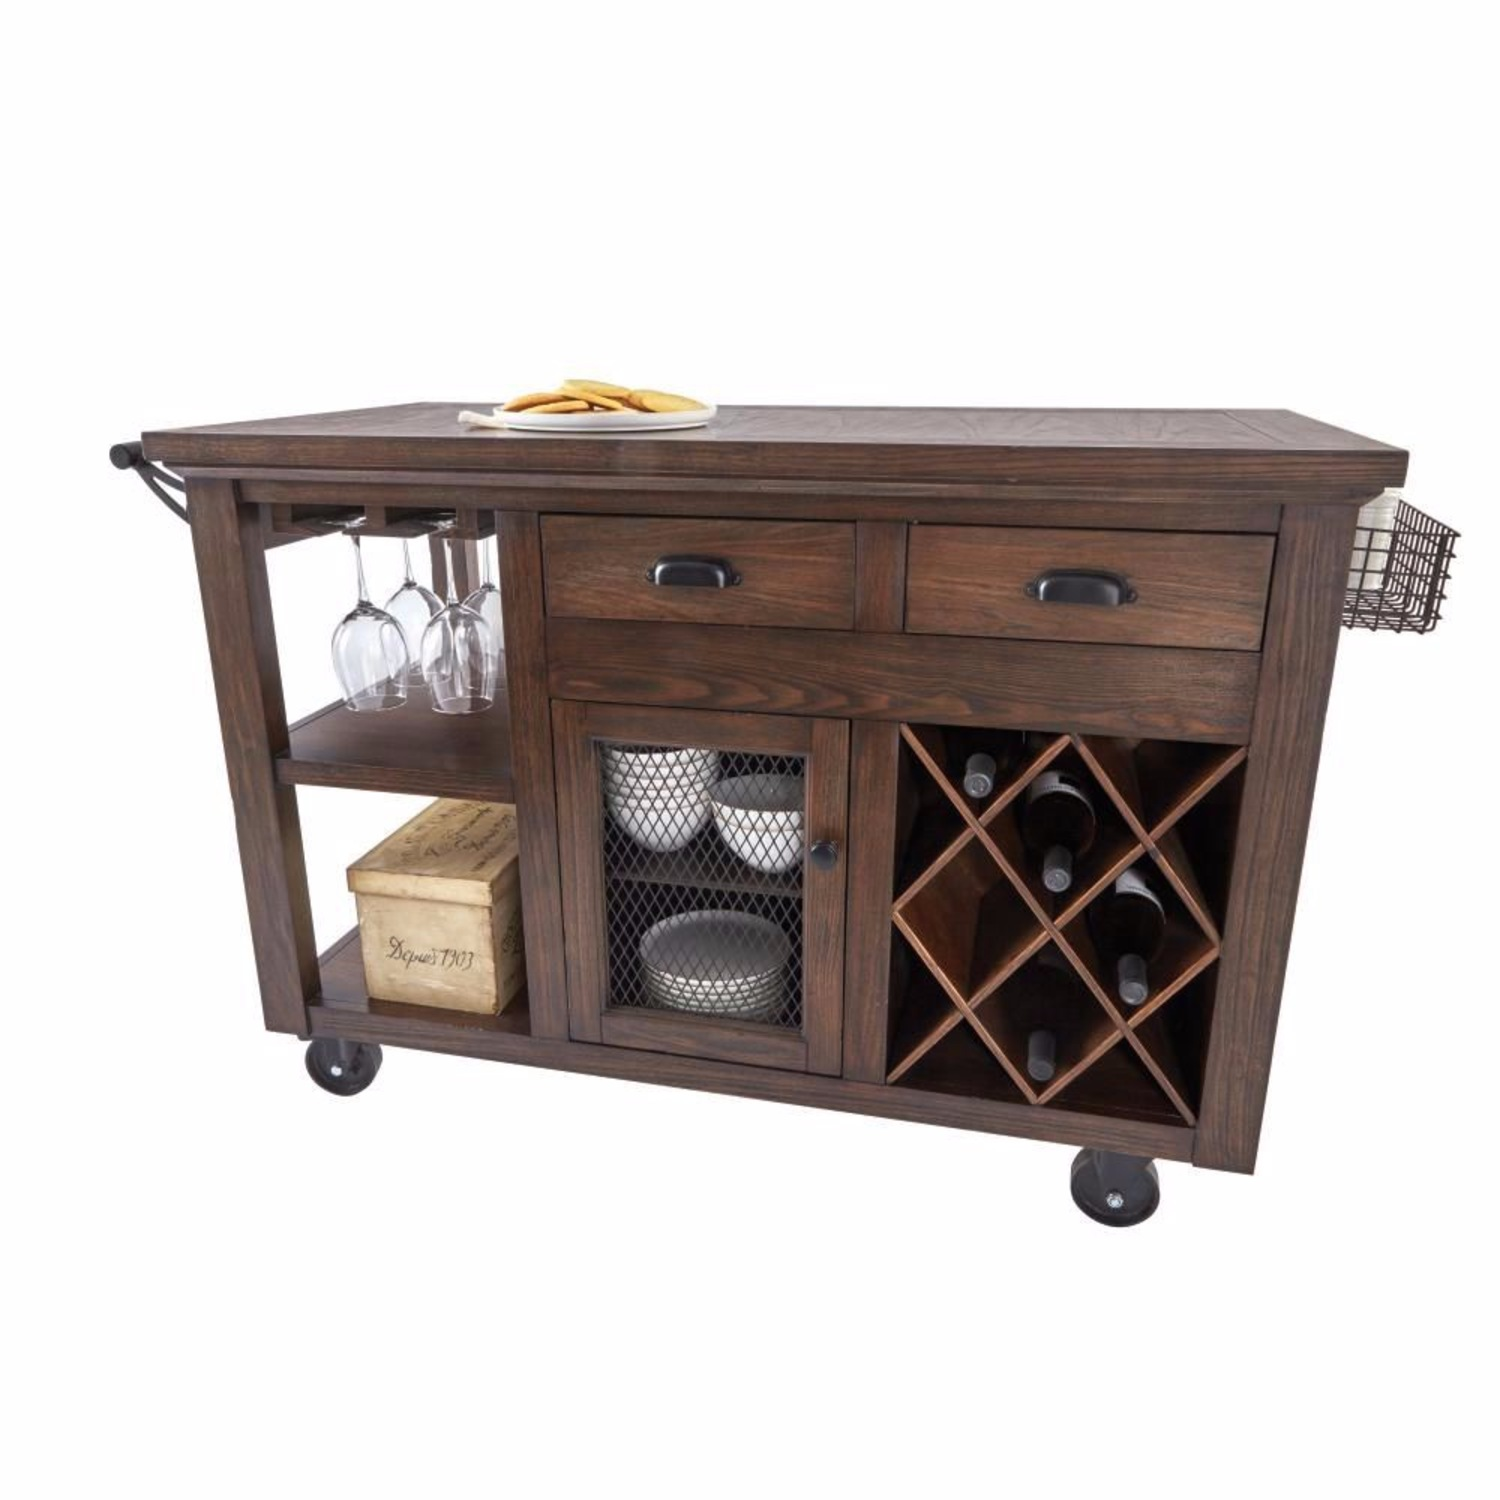 Cooper Rustic Walnut Kitchen Cart with Storage - image-1